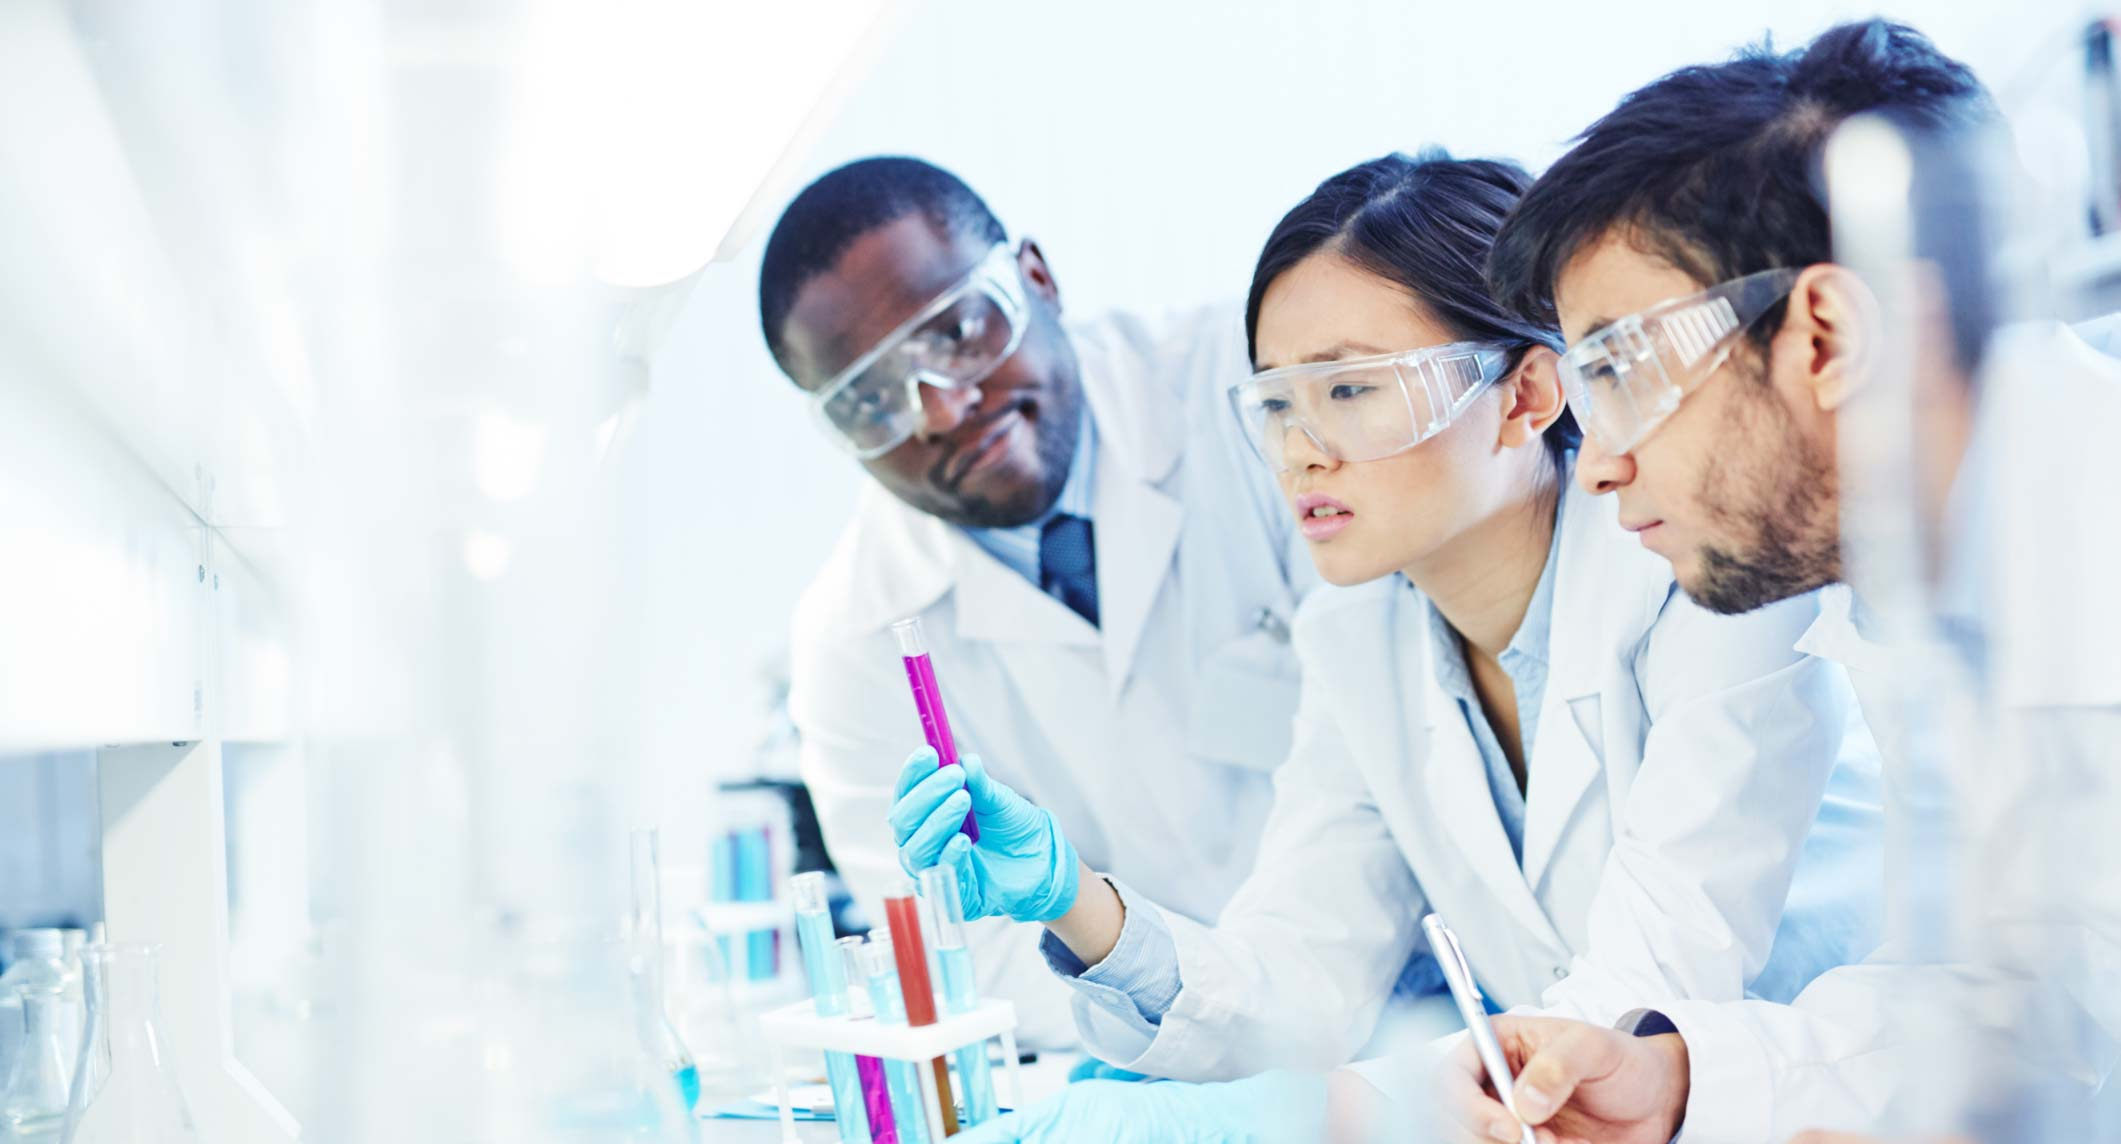 gender differences in science Showed that for this sample there continue to be significant gender differences in  science experiences, attitudes, and perceptions of science courses and careers.